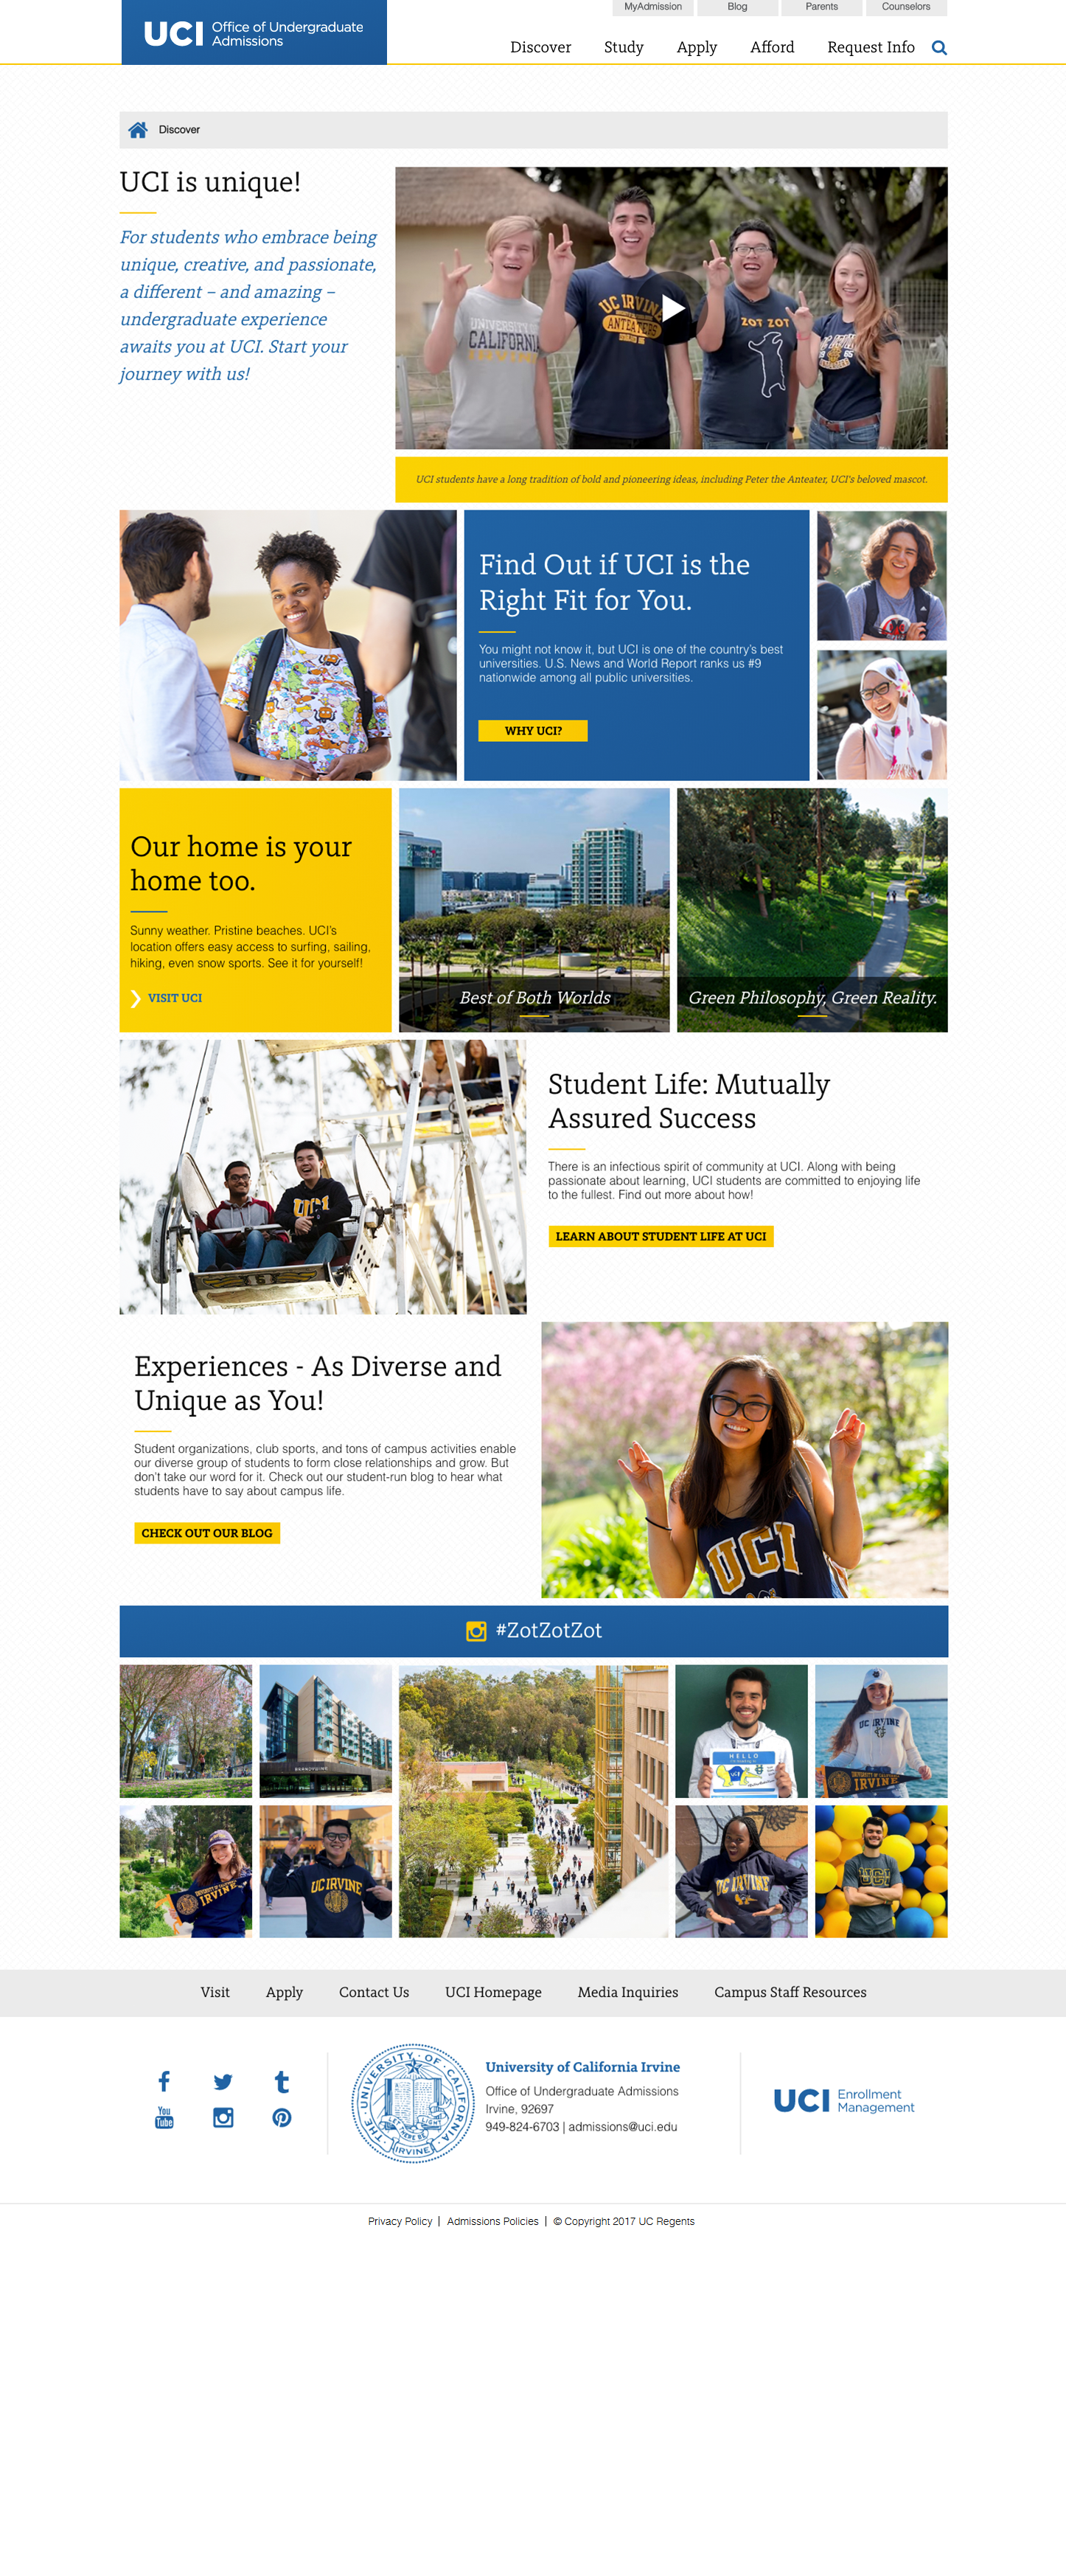 DiscoverUCI.png